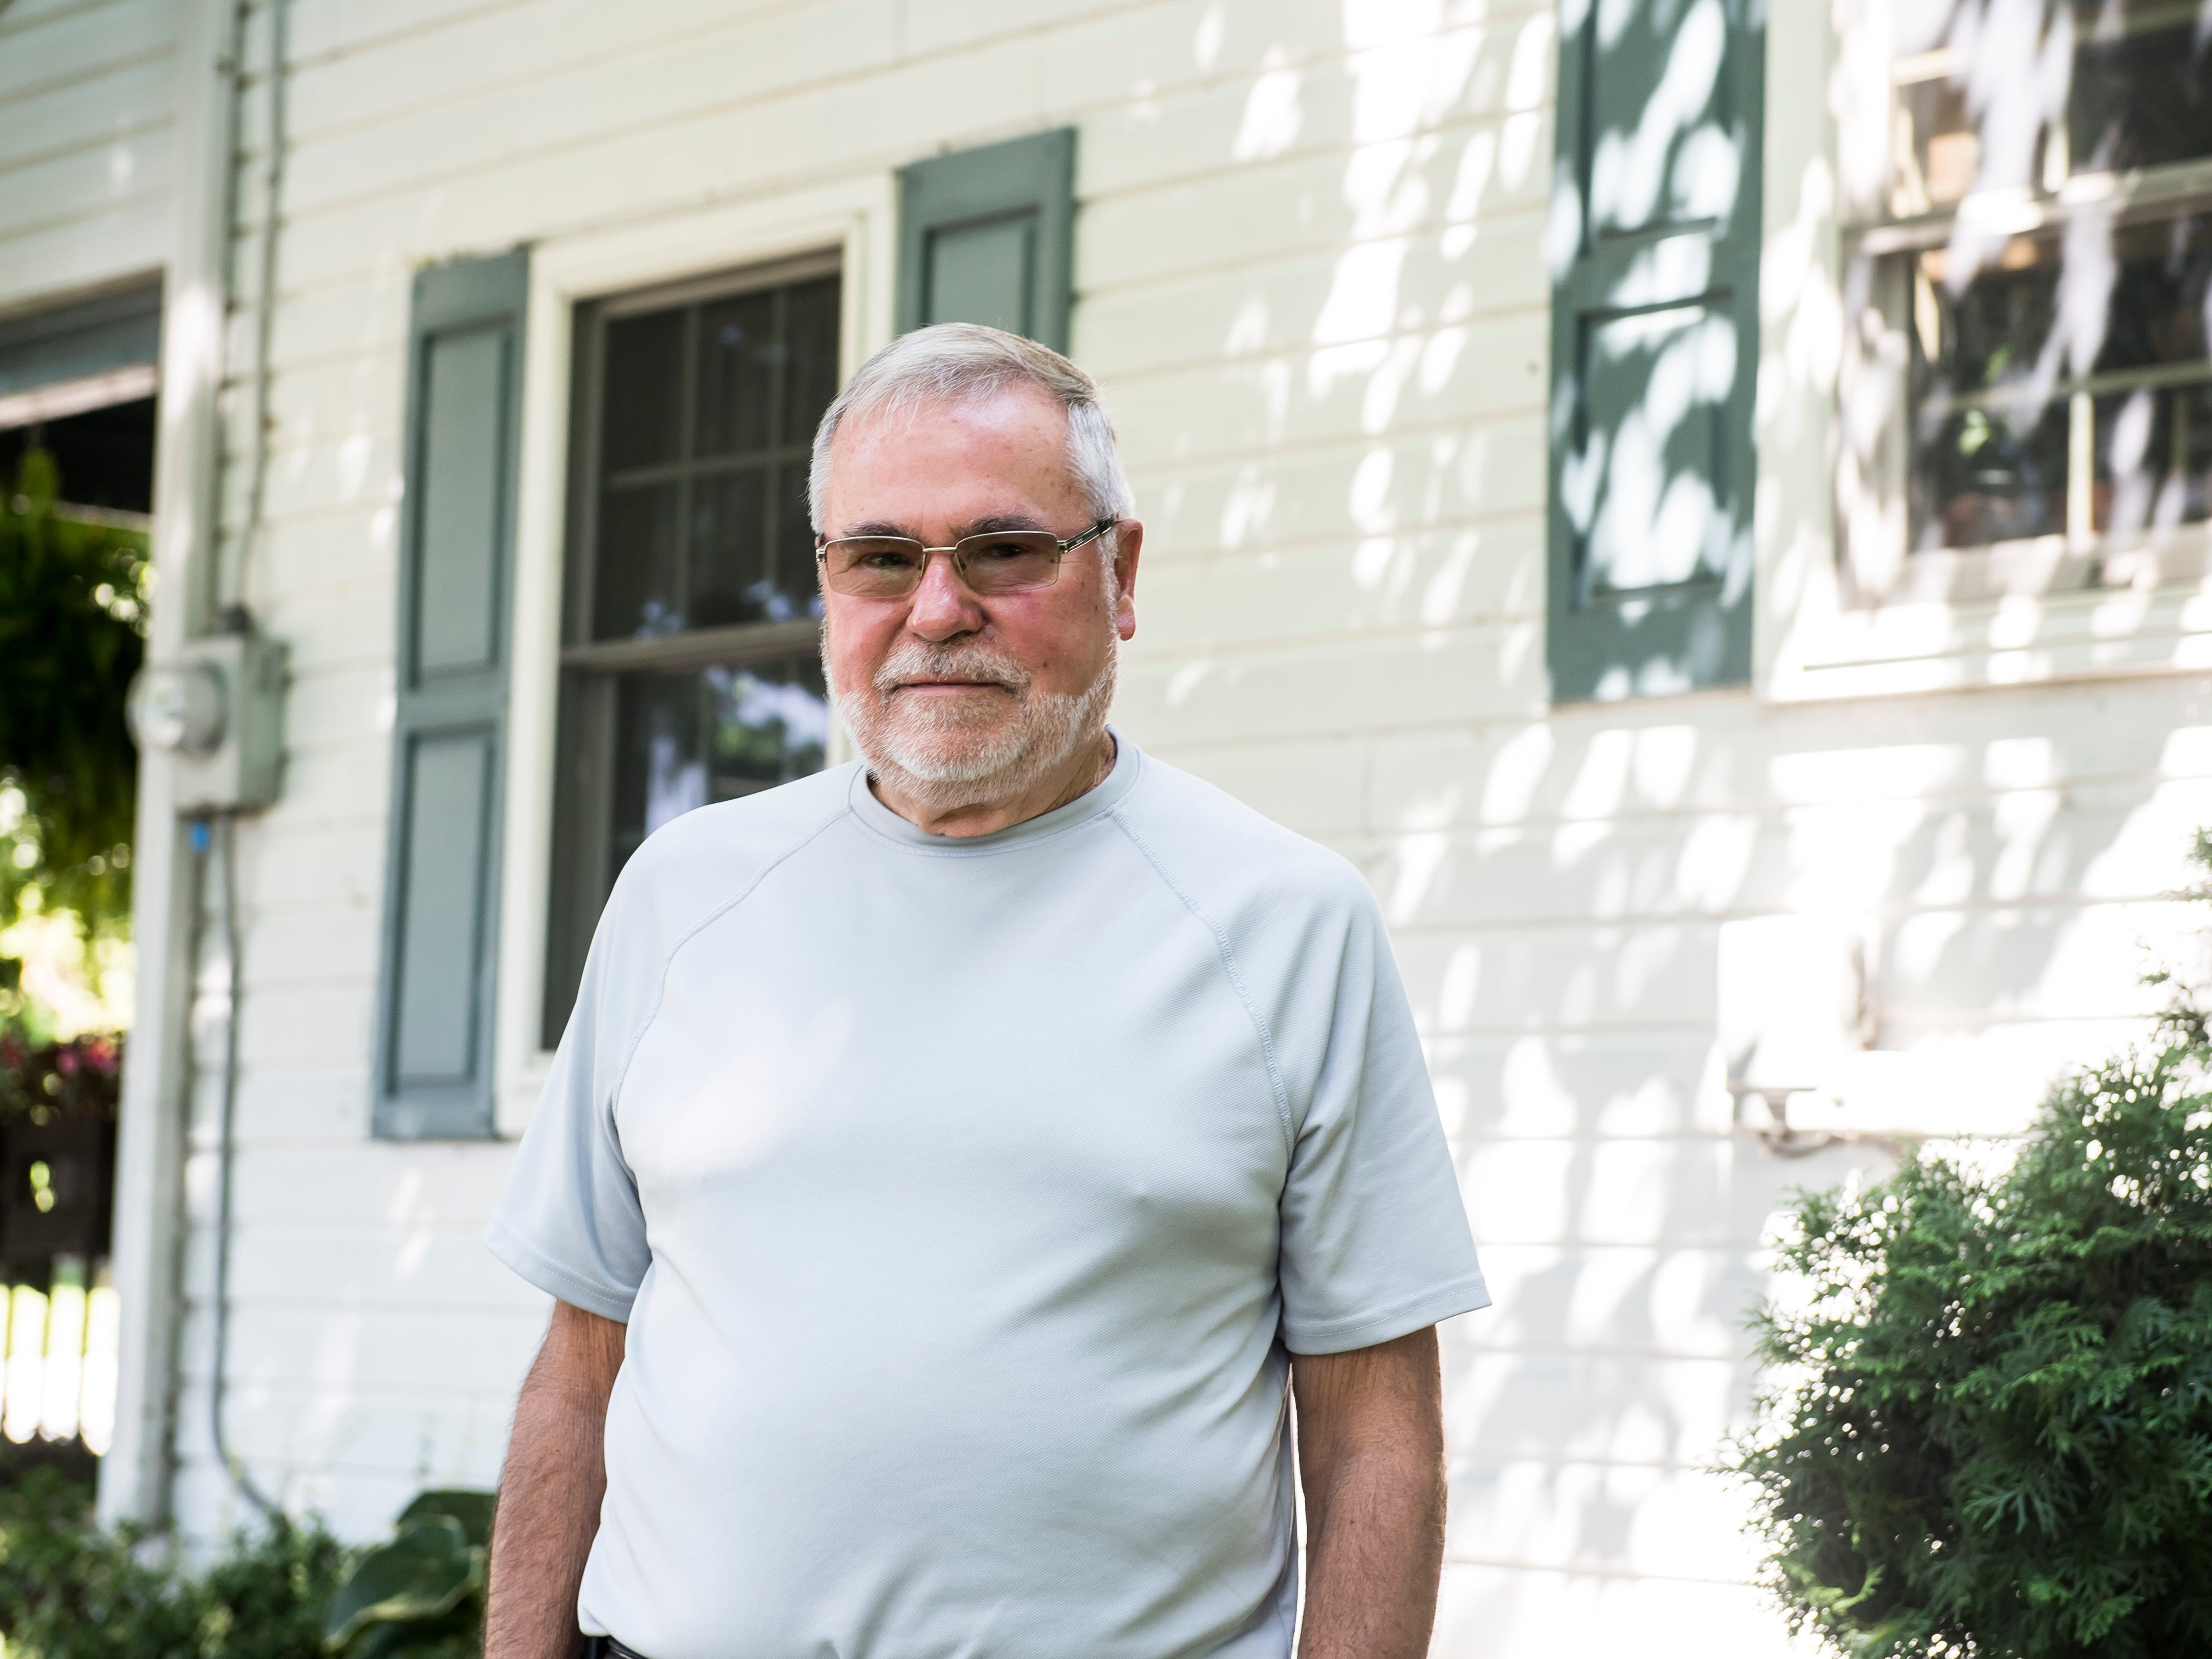 Clyde Funt poses for a photo outside the Menallen Township house where his father, Allen Funt, was murdered in January 1981. Clyde was the first person to arrive on the scene and found his father's body.